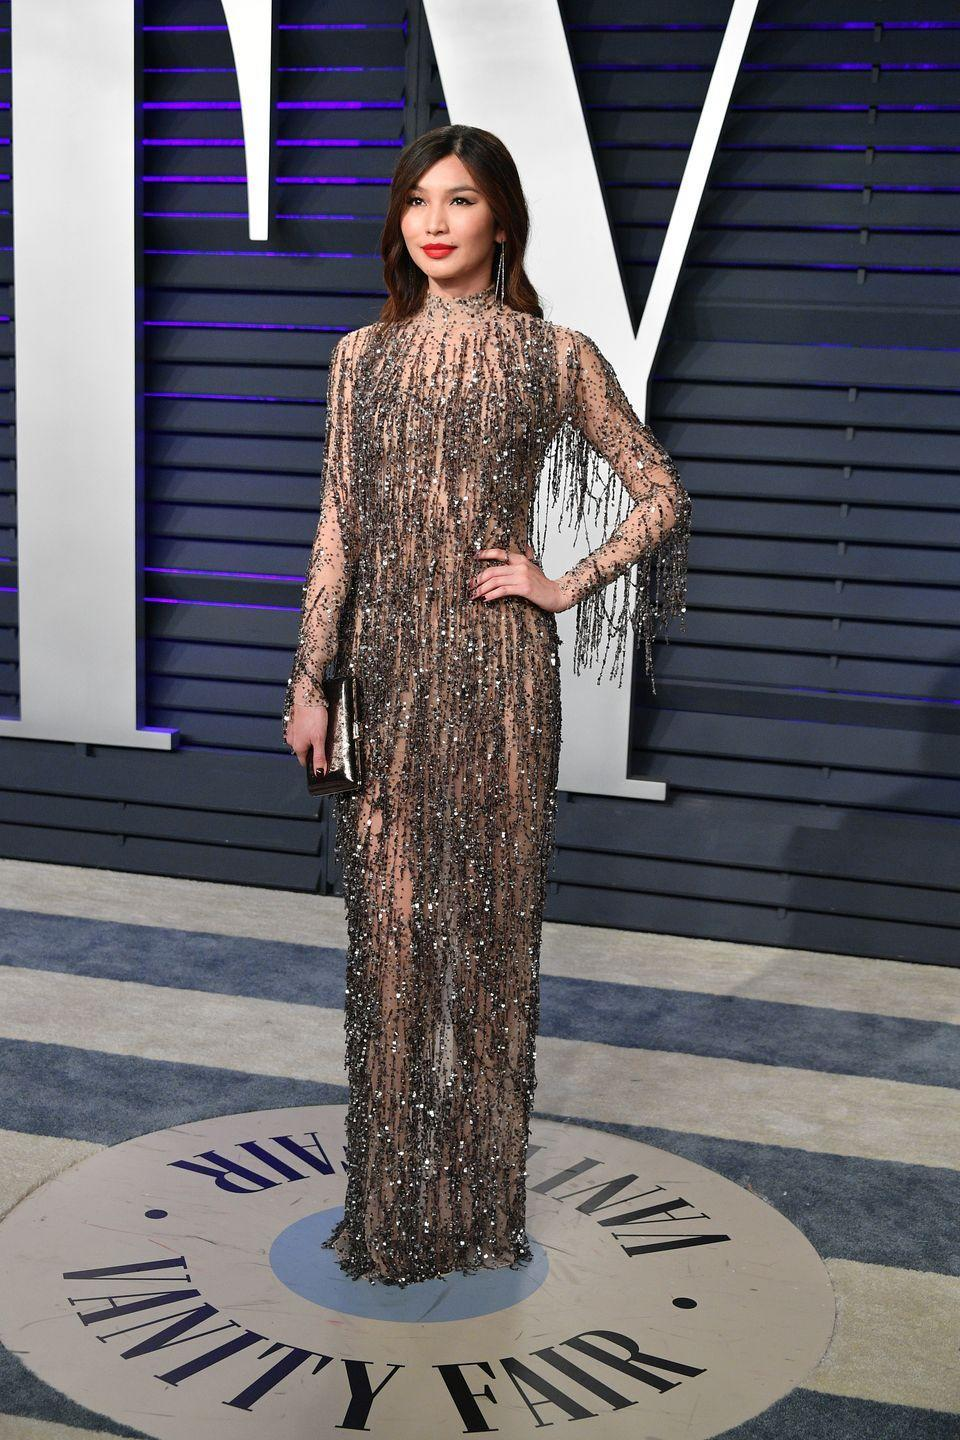 <p>The Oscar afterparty has become as infamous as it's conjoining award ceremony for it's star studded guest list and unforgettable fashion. Chan sparkled in a Tom Ford dress with an equally as decadent bag and shoes by Jimmy Choo.</p>